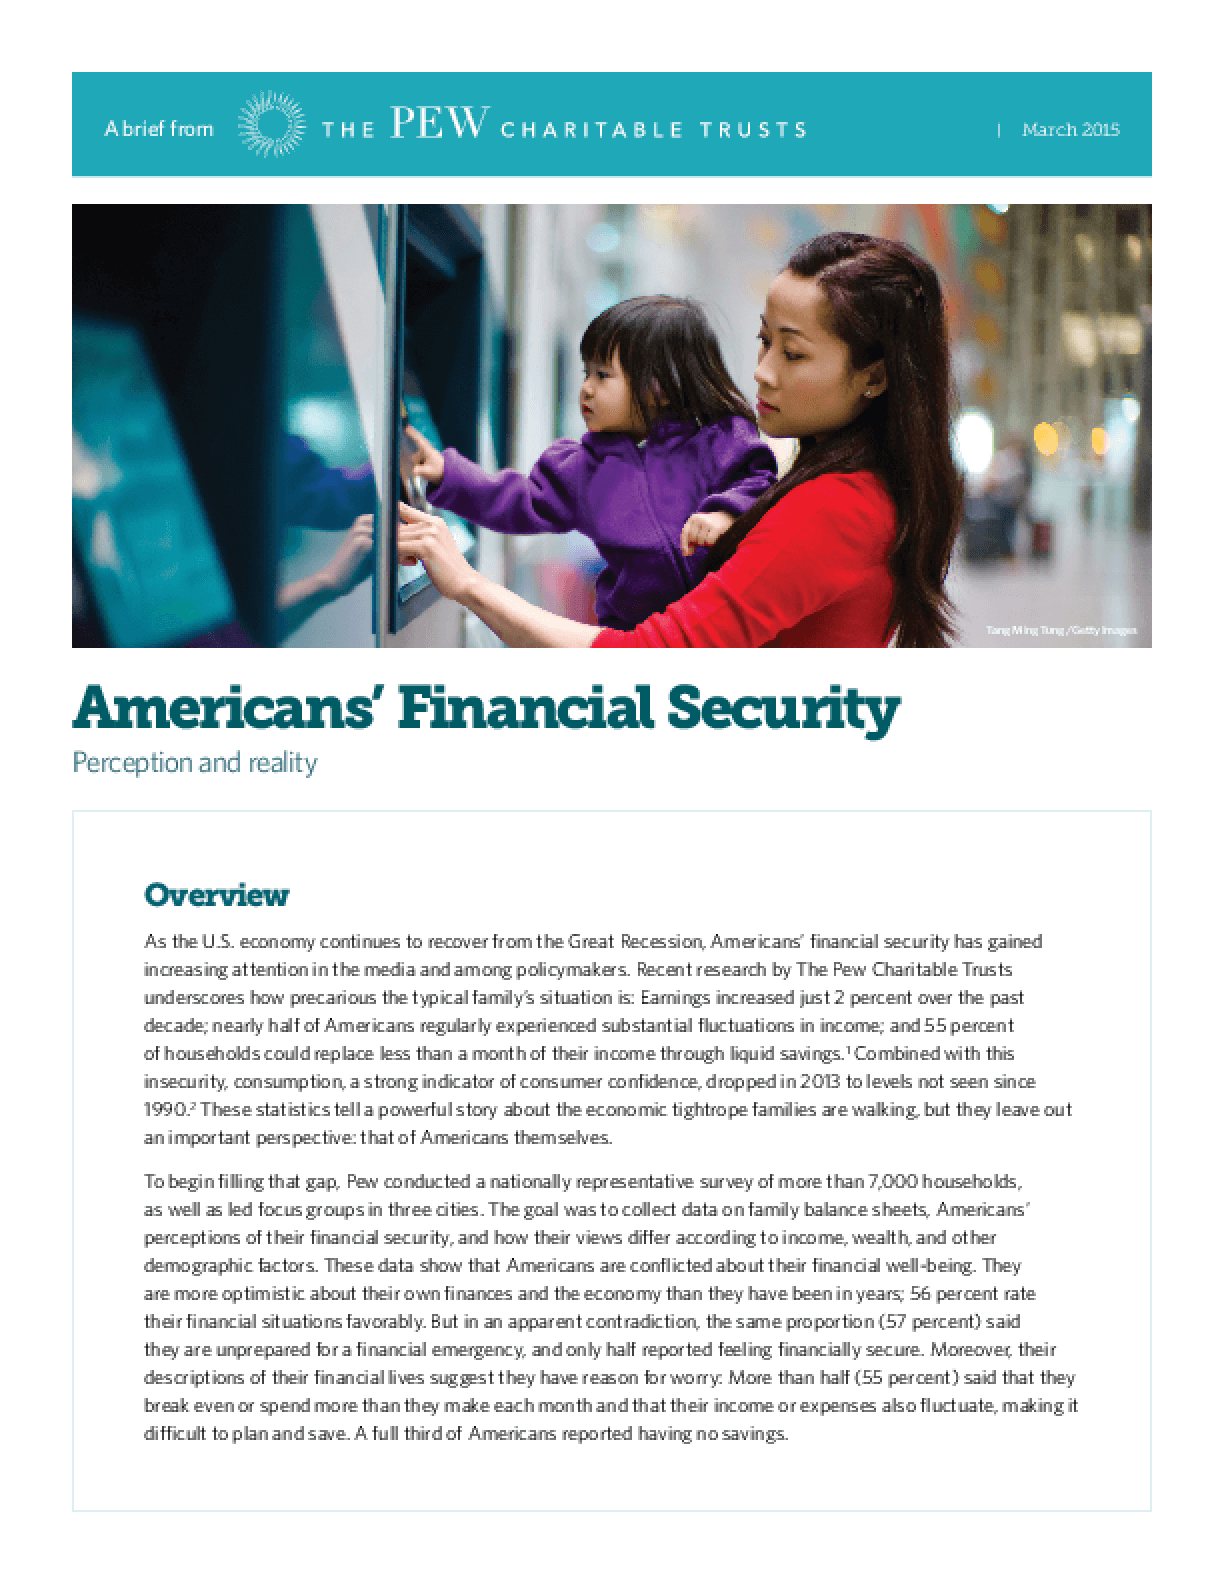 Americans' Financial Security: Perception and Reality